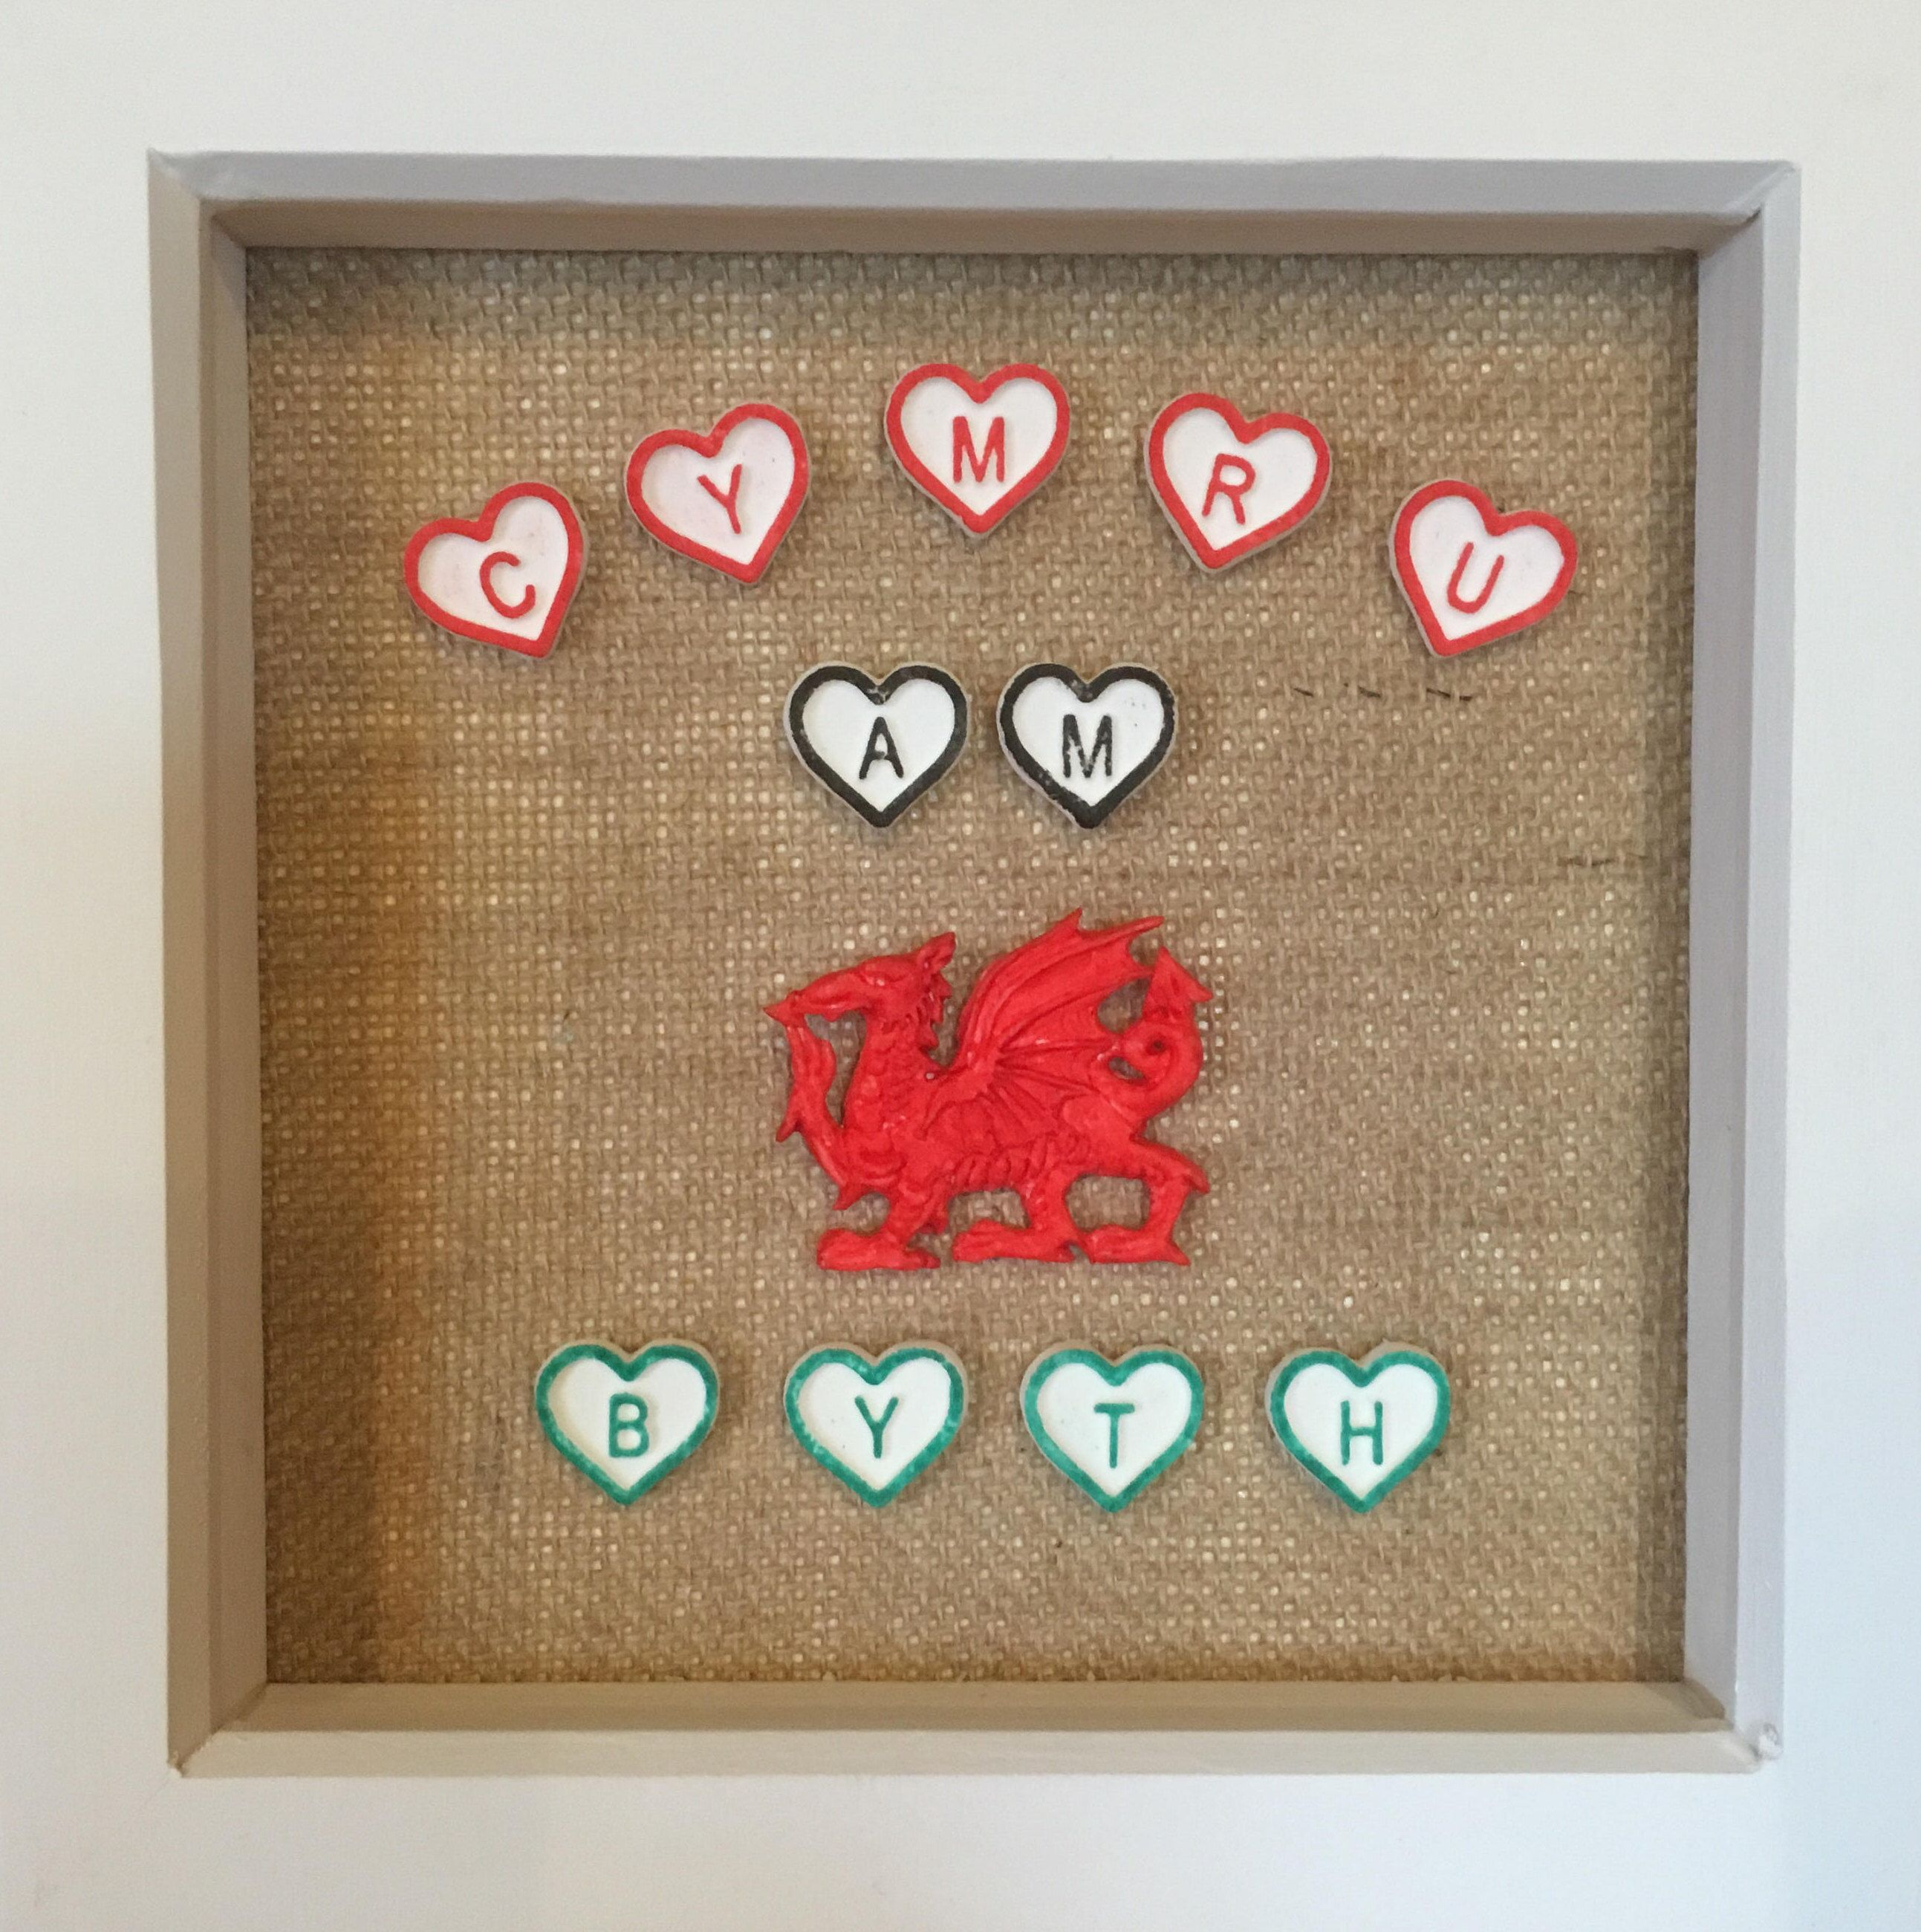 Excited to share the latest addition to my #etsy shop: Cymru Am Byth ...